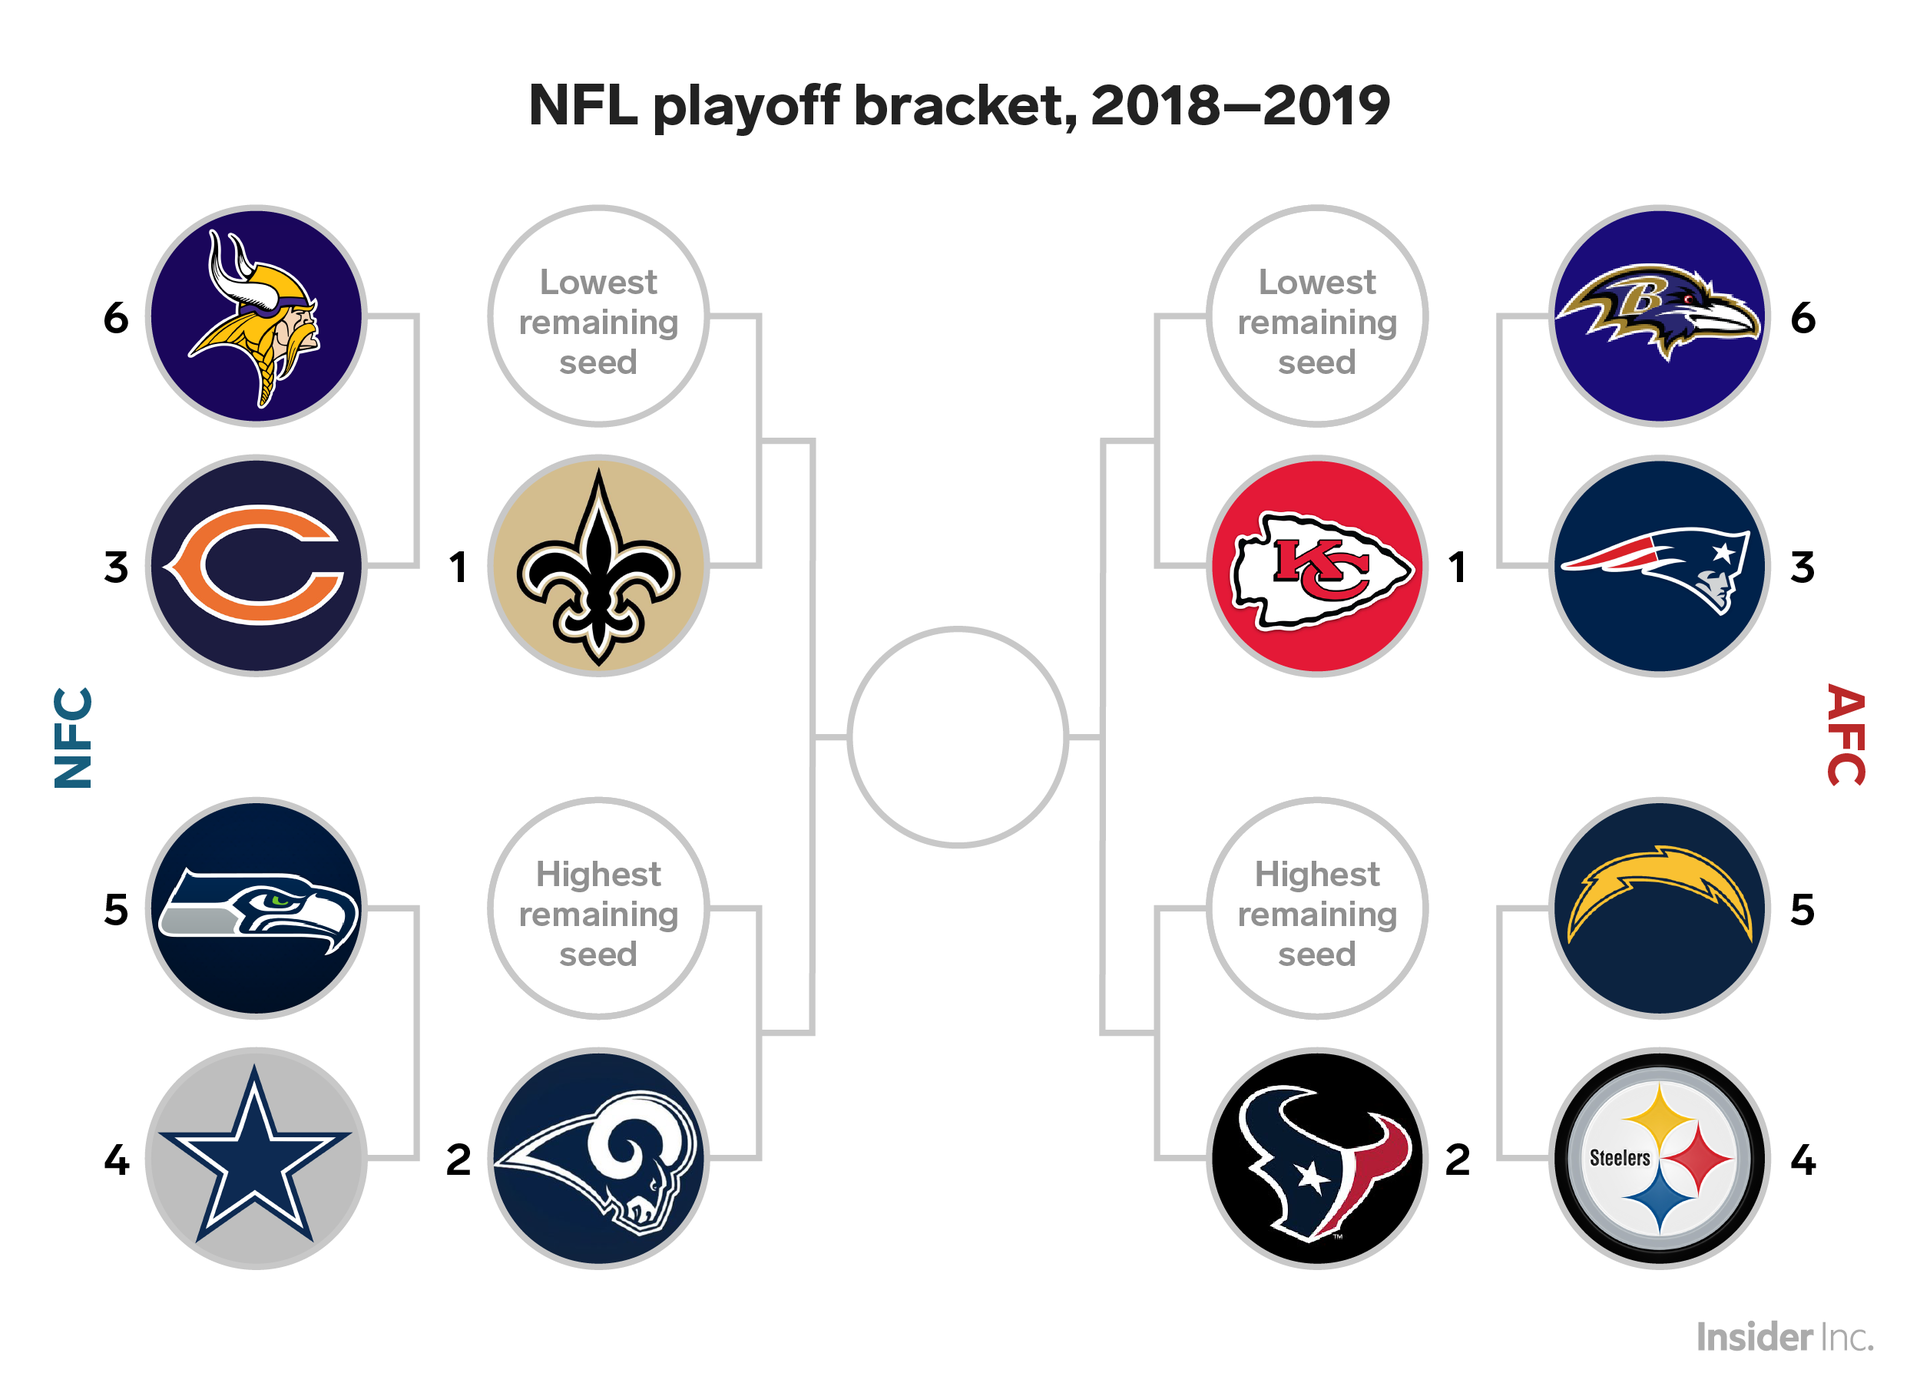 Here S What The Nfl Playoff Bracket Would Look Like If The Season Ended Today Nfl Playoff Bracket Nfl Playoffs Nfl